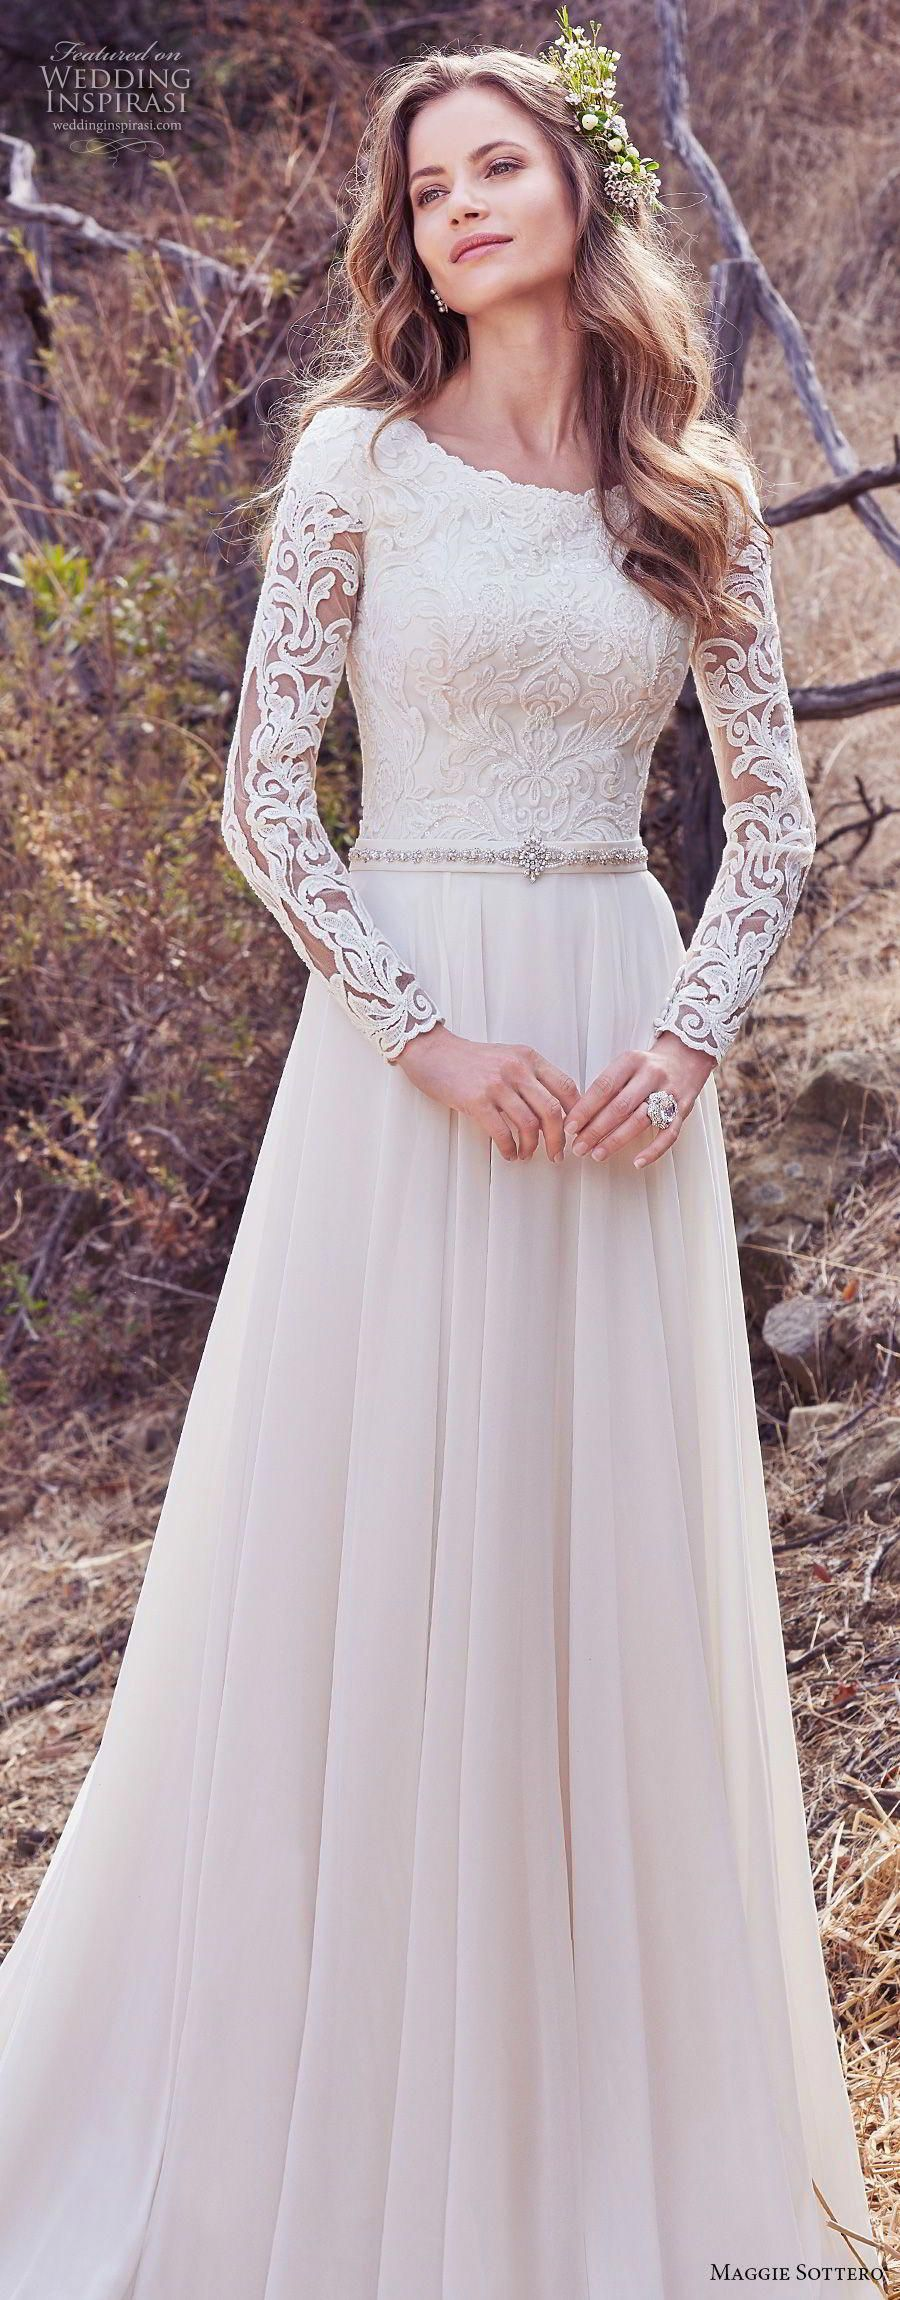 2 piece white lace dress may 2019 maggie sottero fall  bridal long sleeves bateau neckline heavily